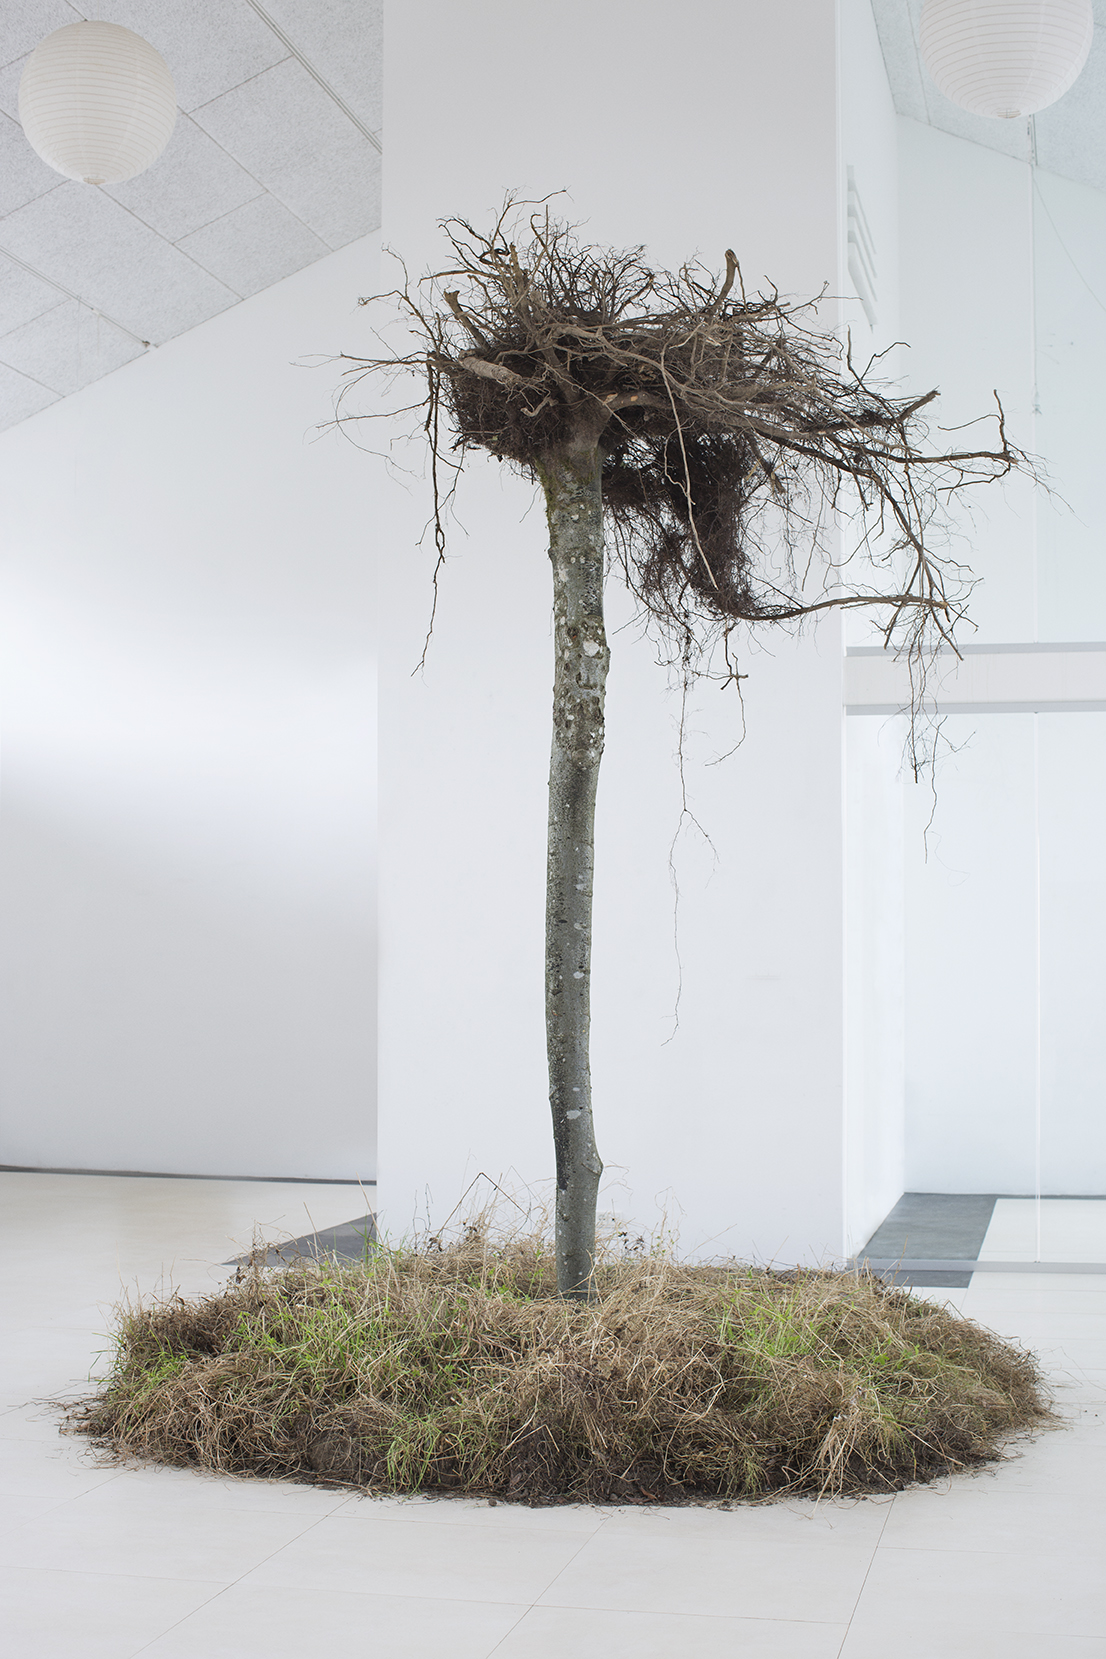 VÆKST (Growth), reverse tree with reddening, turf, 2 x 2 x 3,5 m, 2018